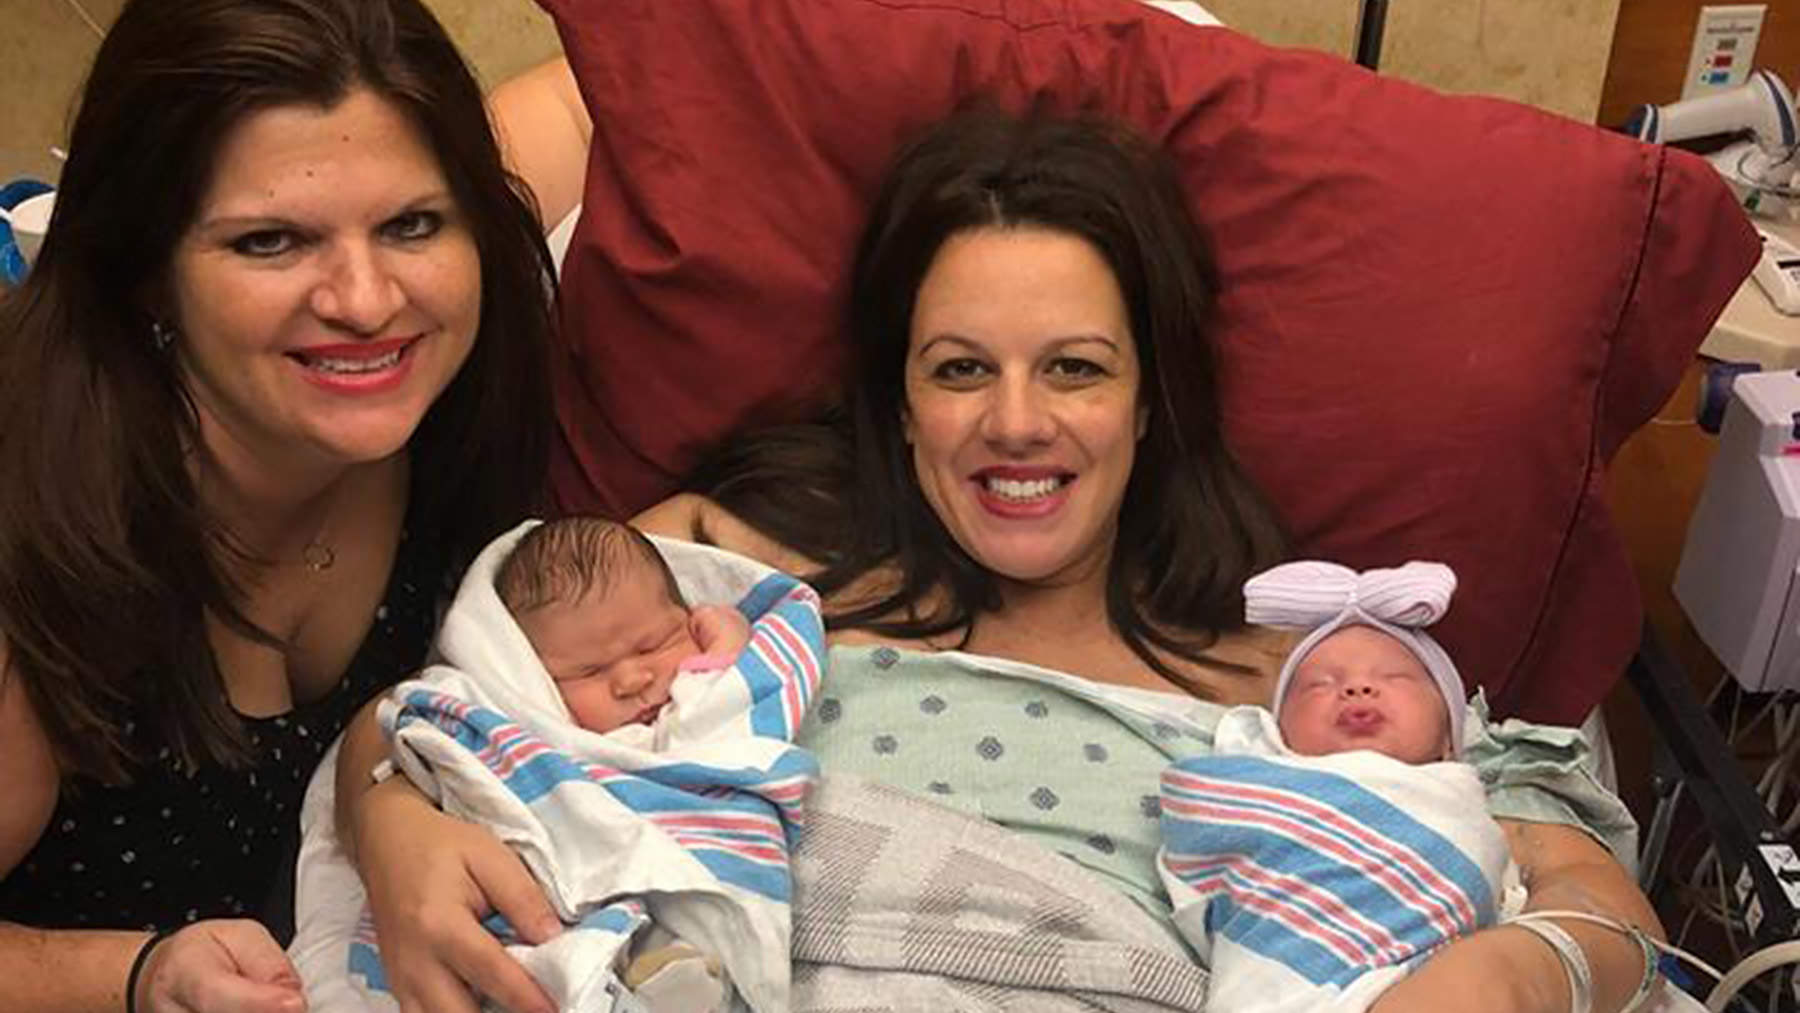 Mississippi Woman and Wife Pregnant at Same Time Give Birth 2 Days Apart: We Are 'So in Love'